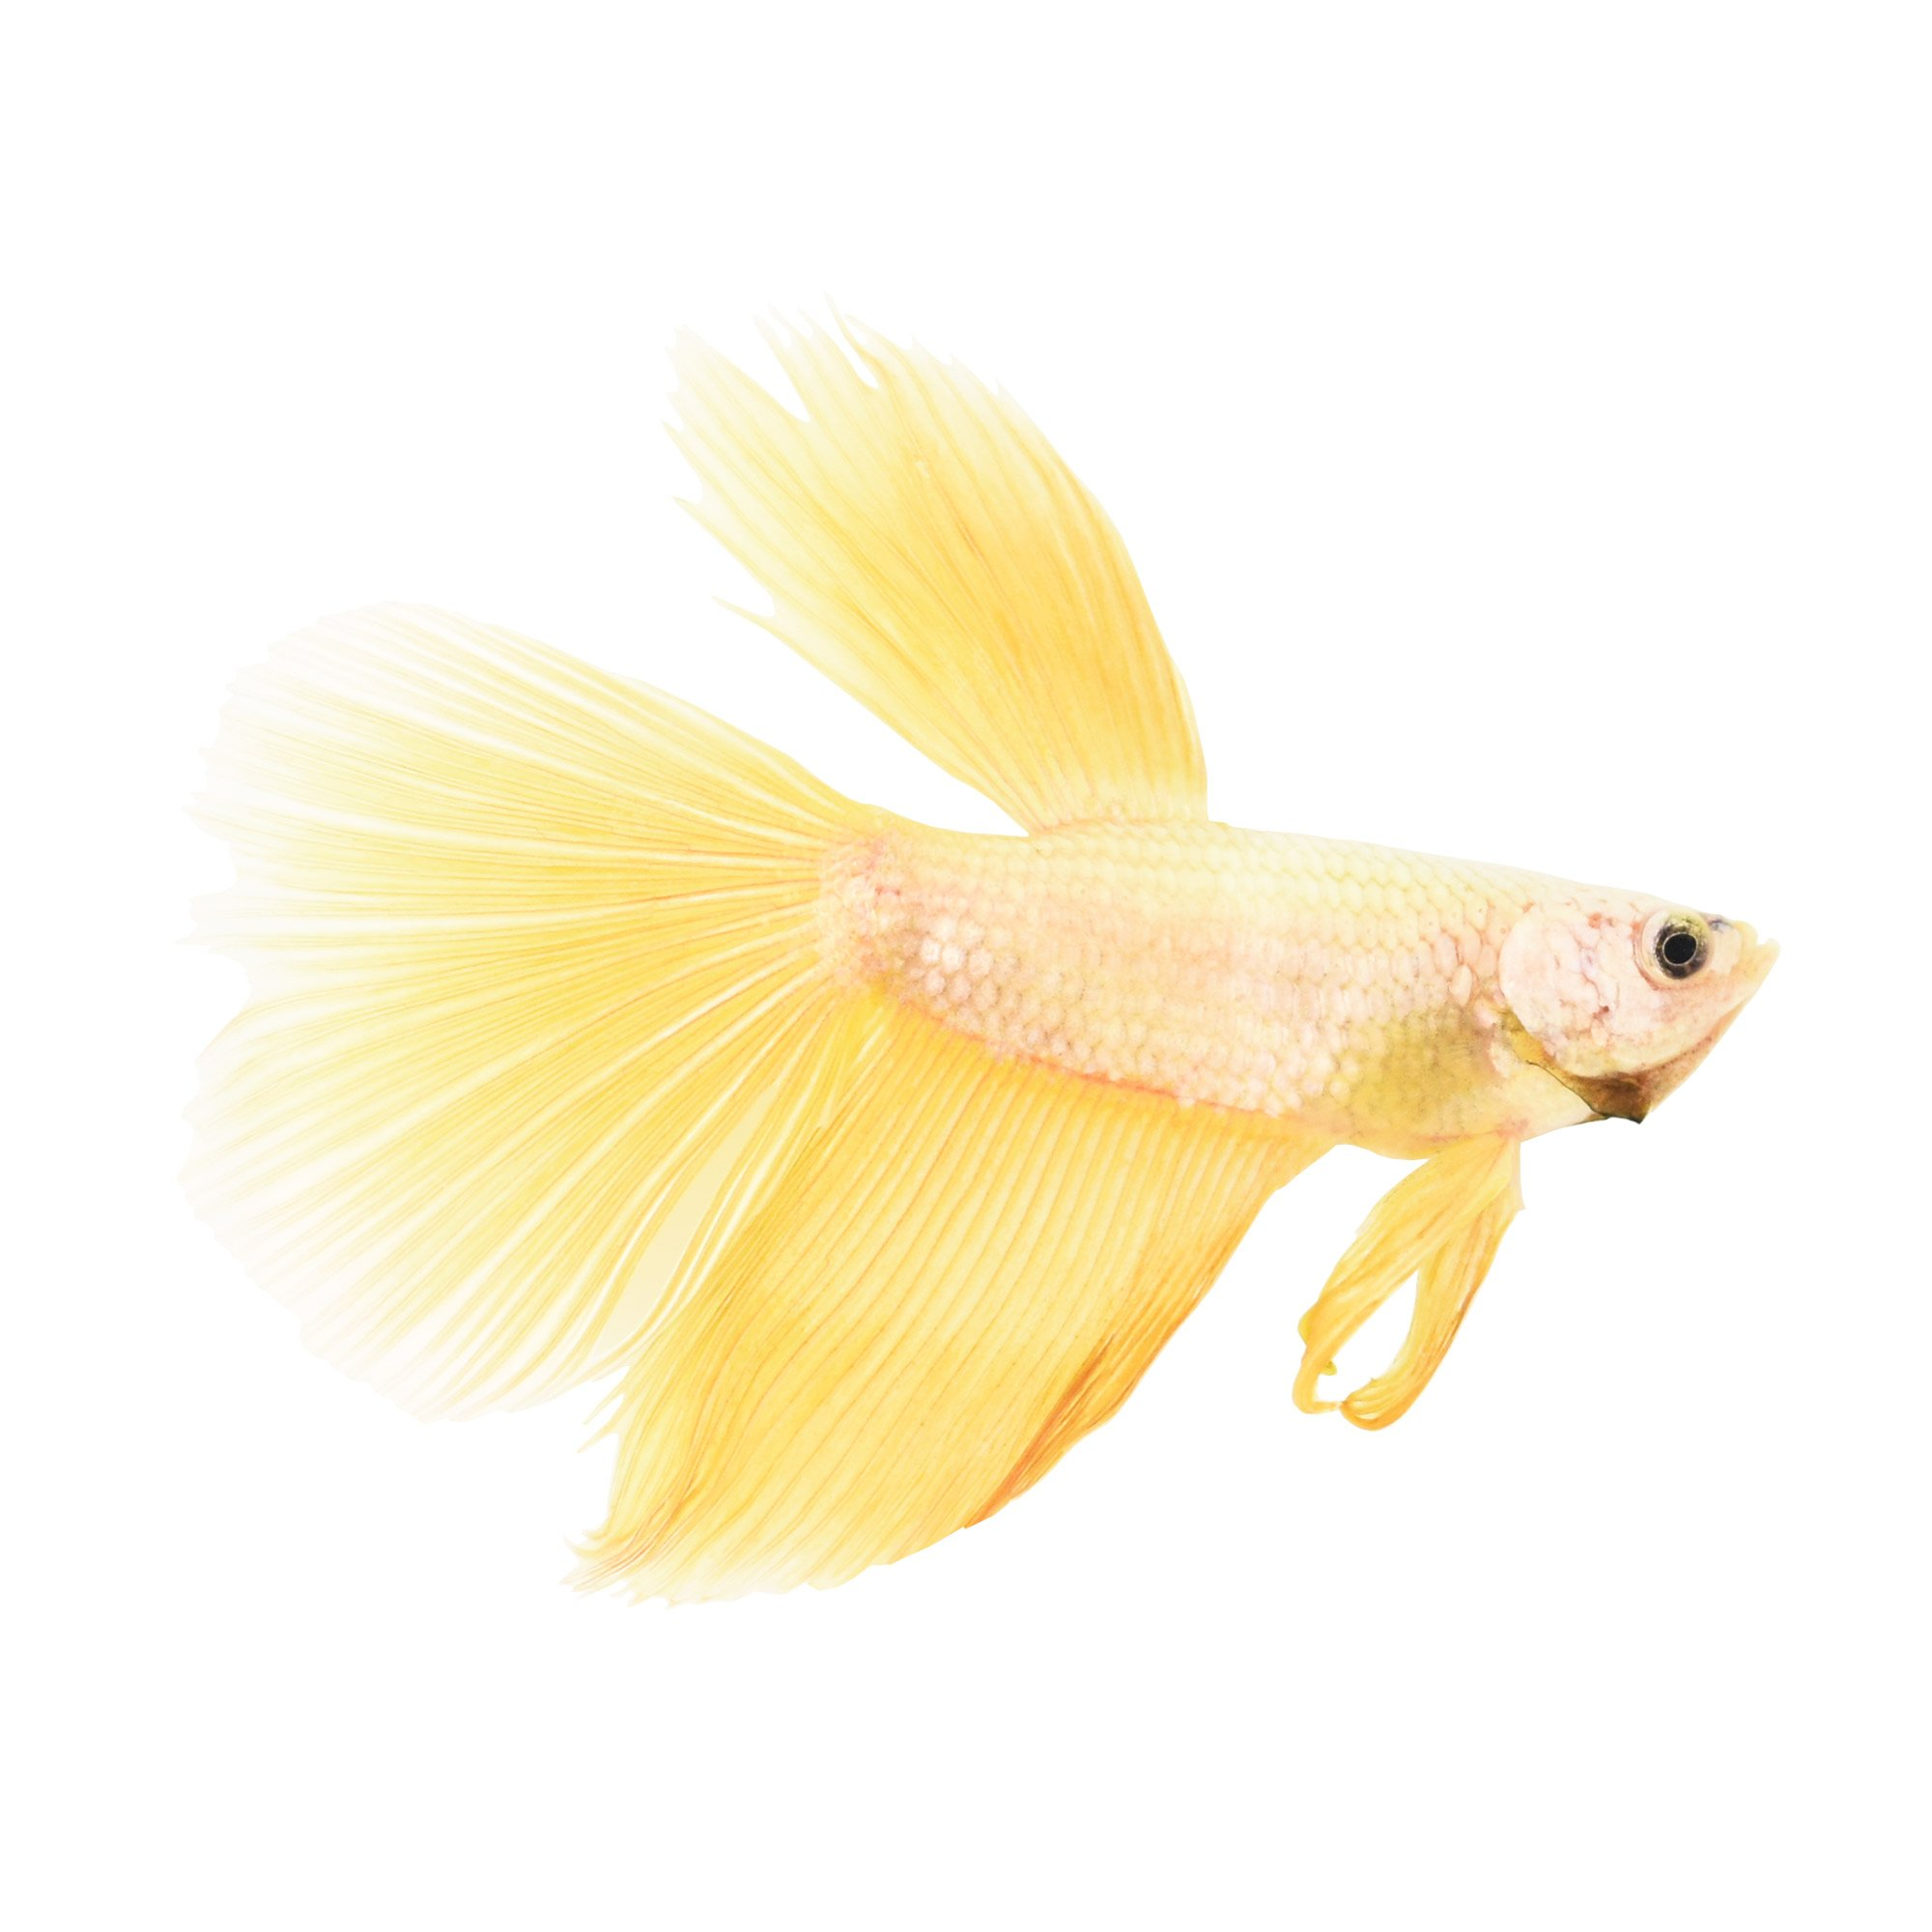 Aquarium Fish information and articles. Professional aquatic & pond help, advice and links are provided. Updated, researched Information Since !!